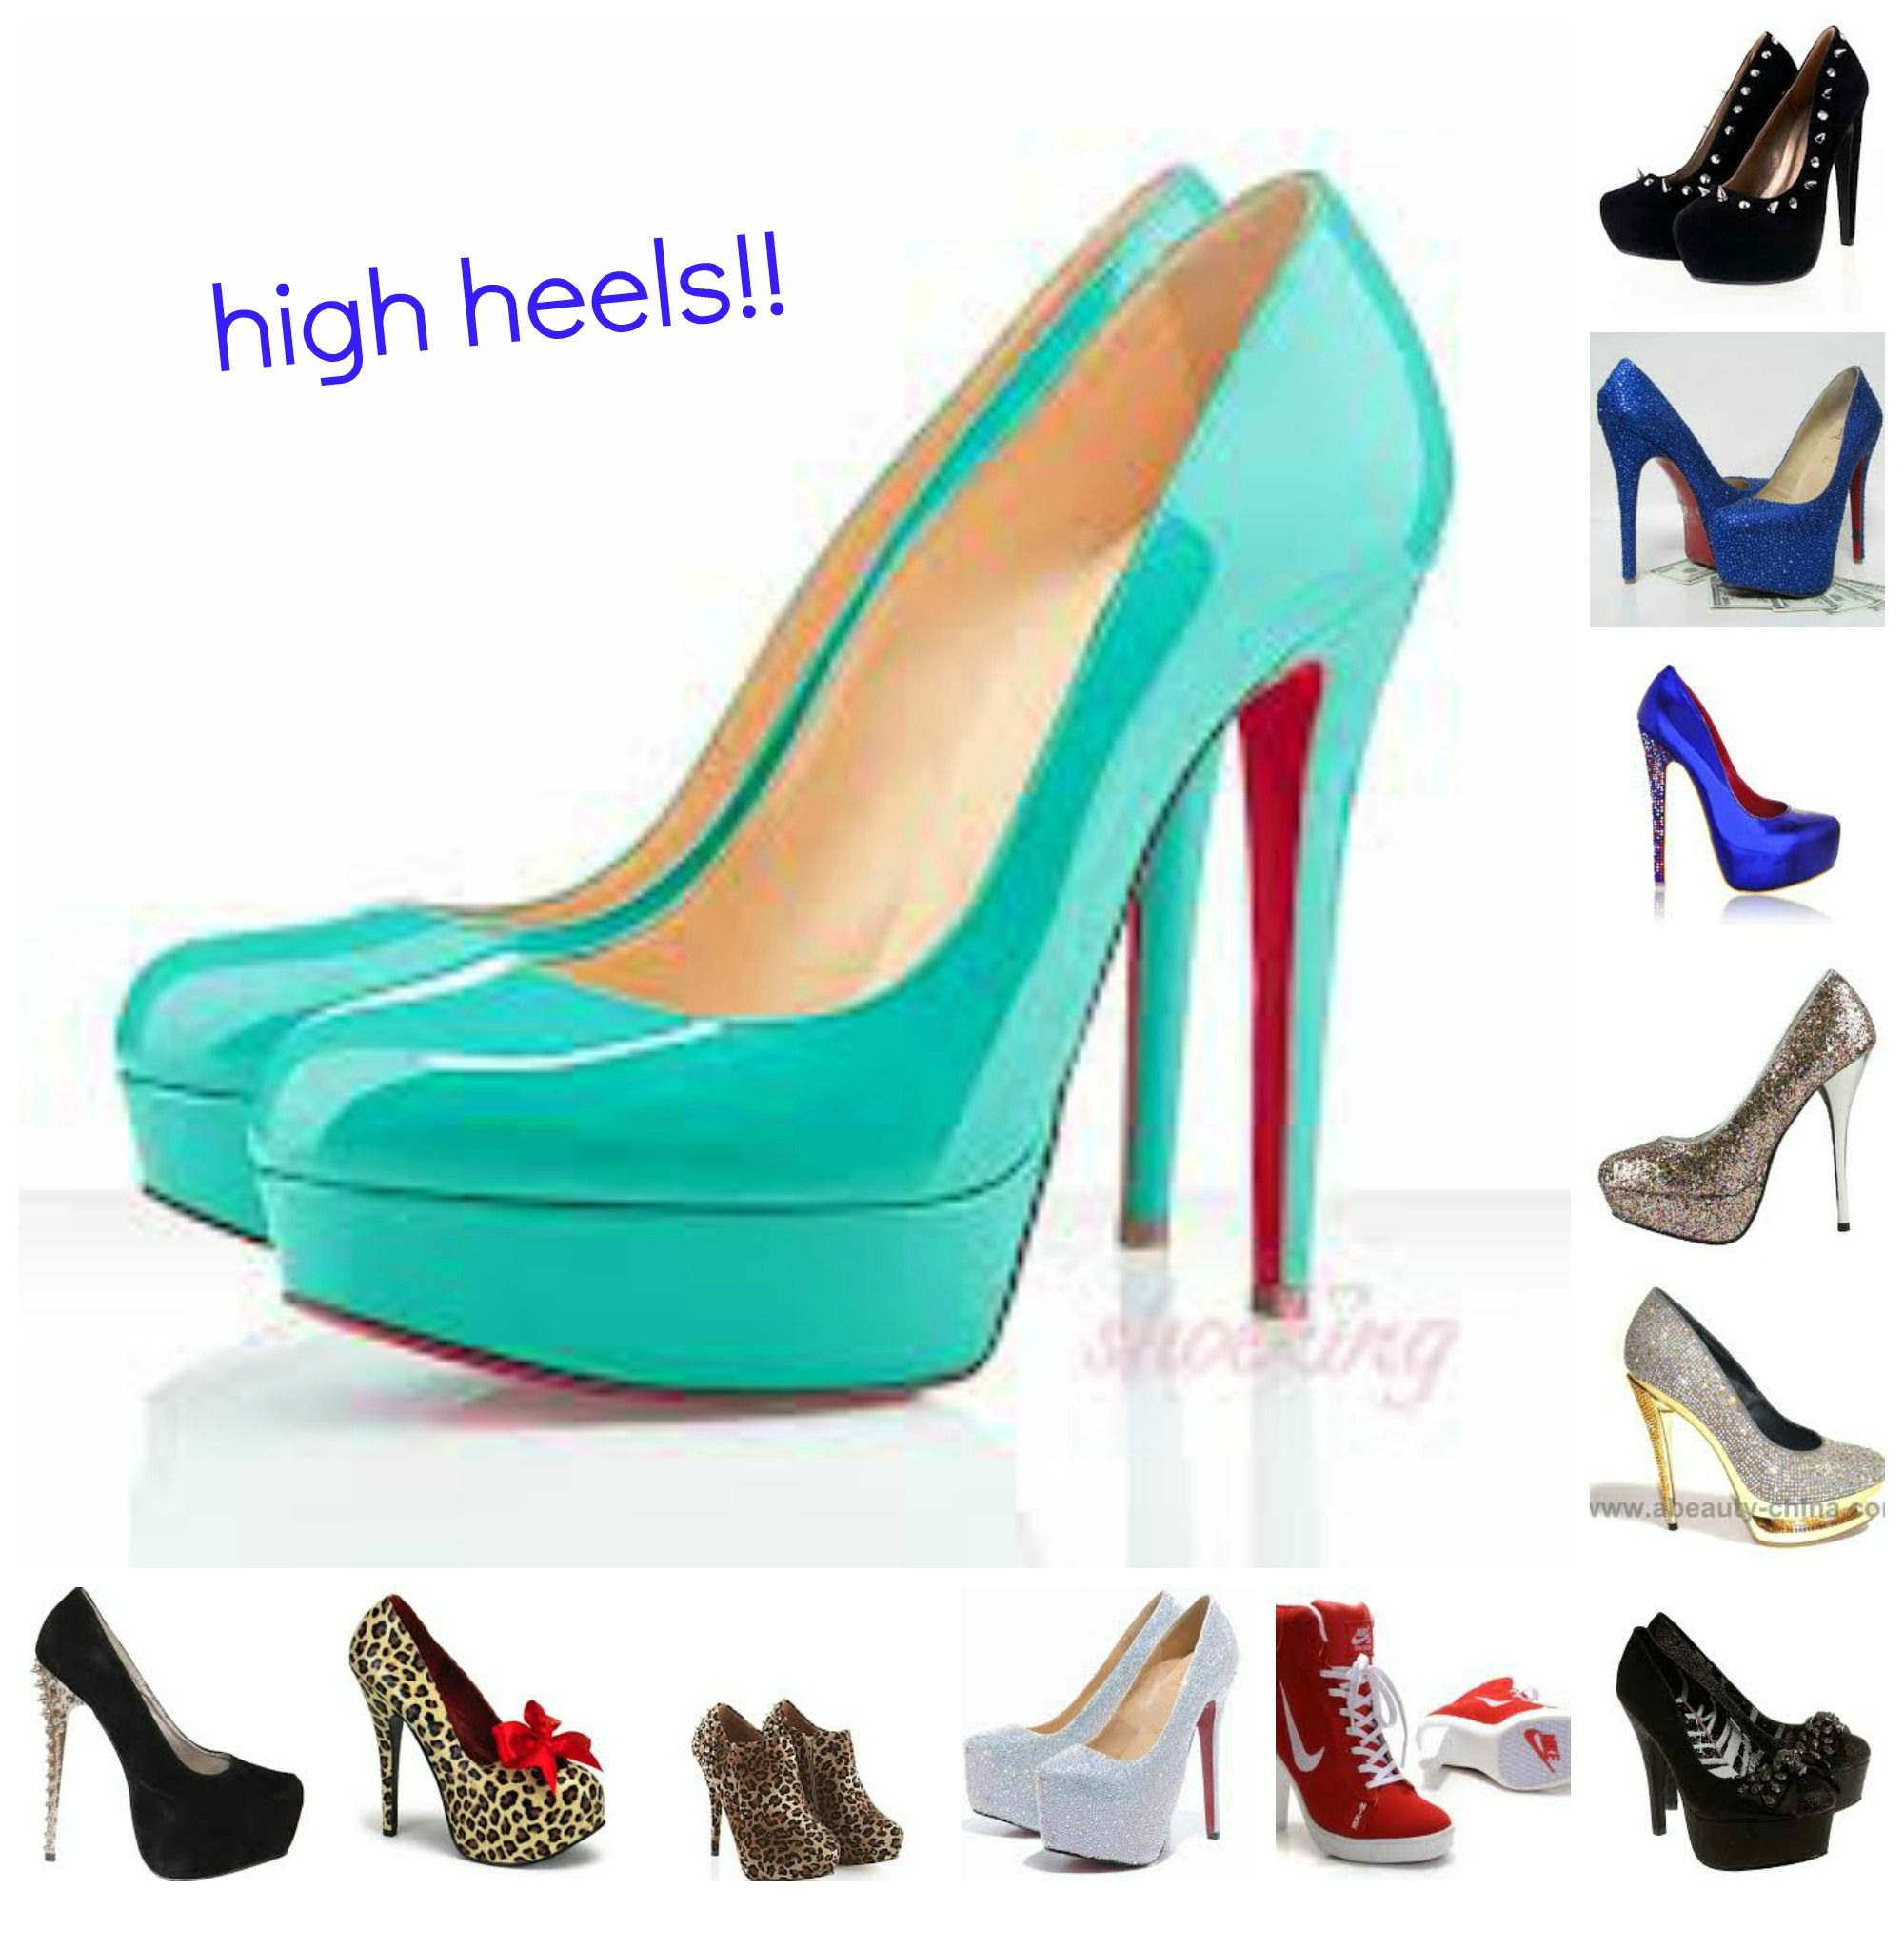 to wear - Louboutin christian shoes collage video